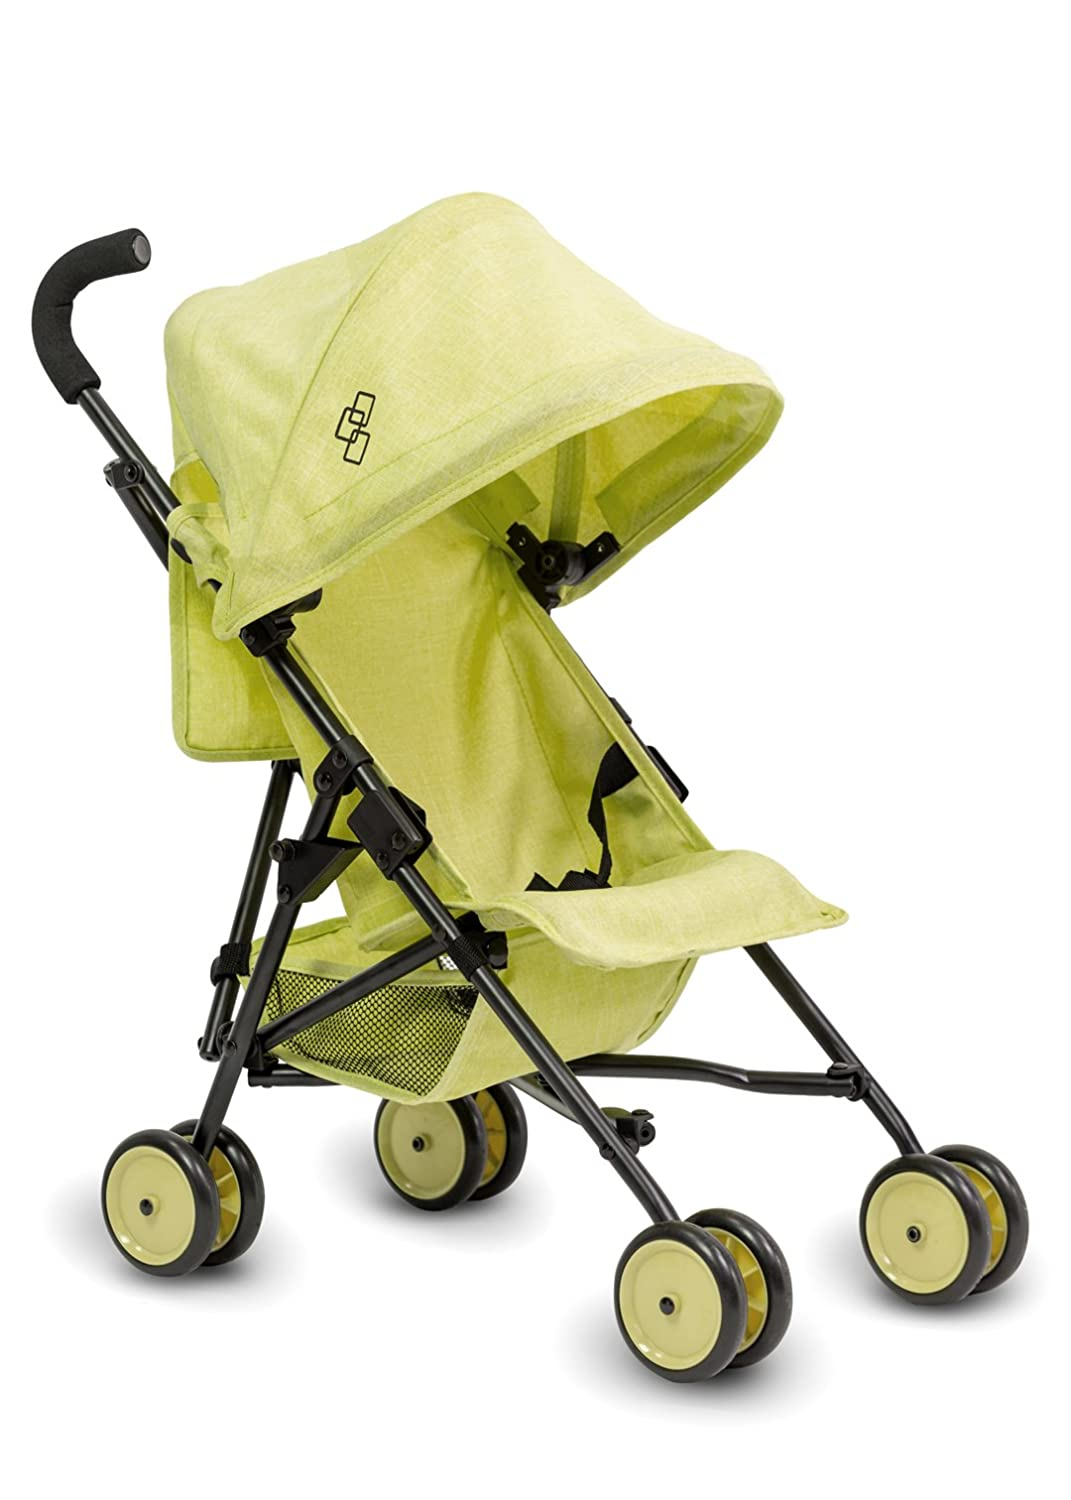 Triokid My First Baby Doll Stroller Miniline Lemon Green Travel Stroller Portable Stroller Drawable Fabric with B01N5I8E2T